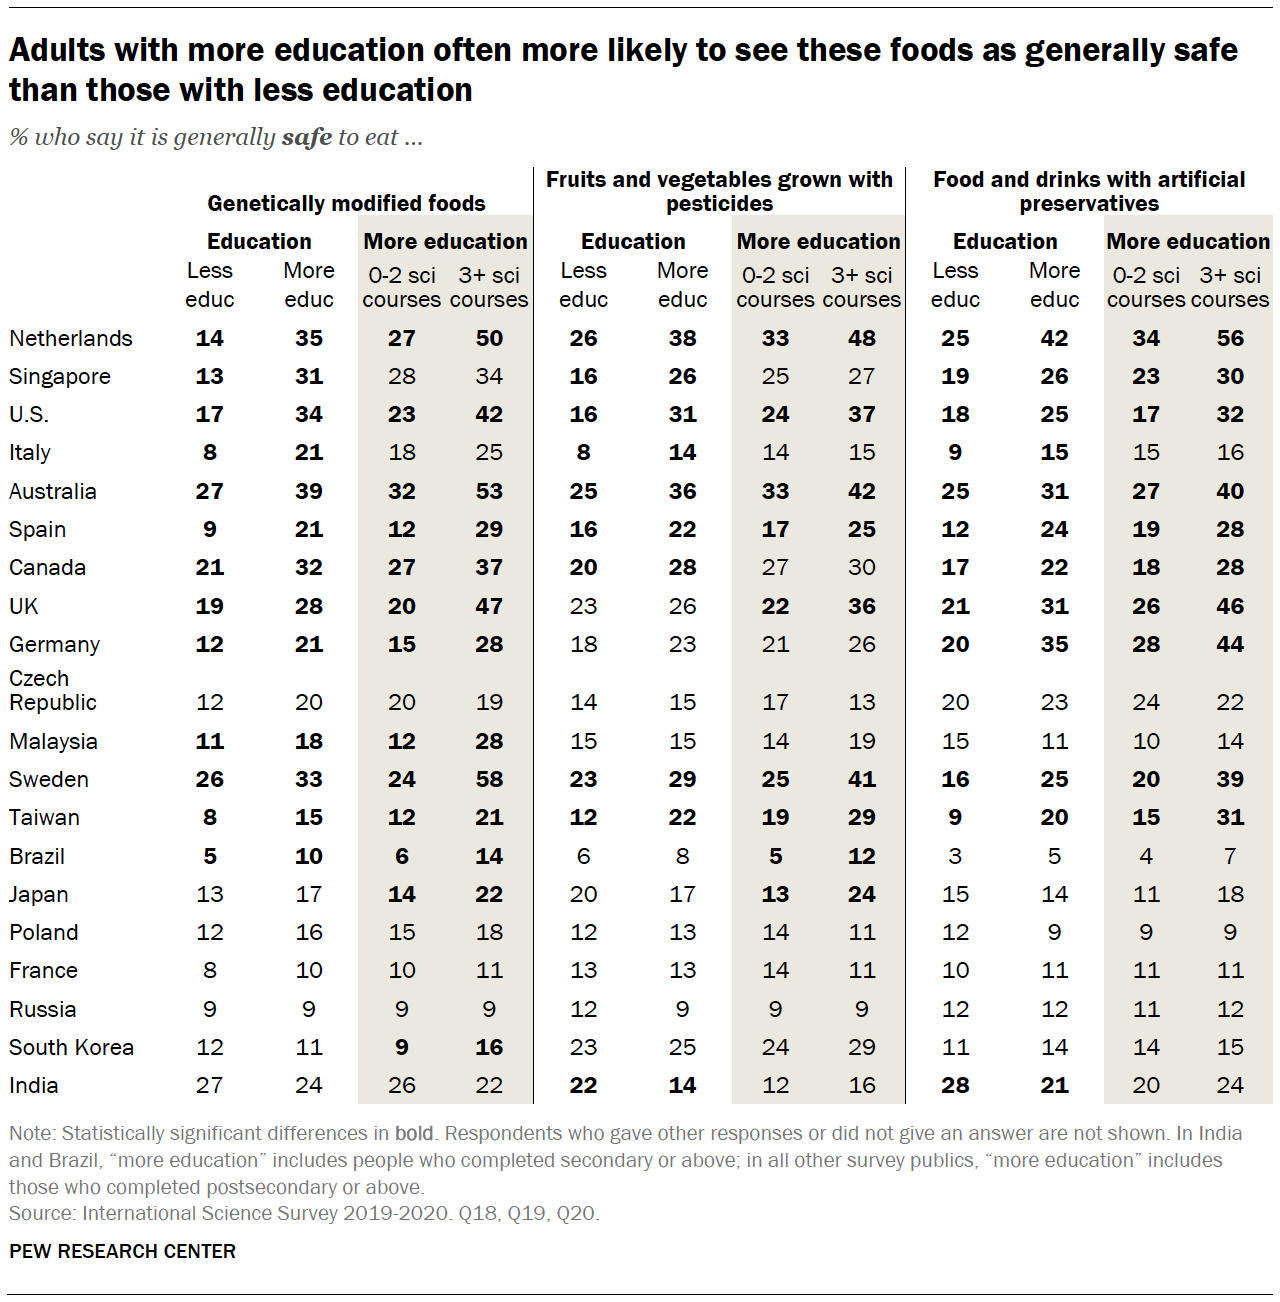 Chart shows adults with more education often more likely to see these foods as generally safe than those with less education